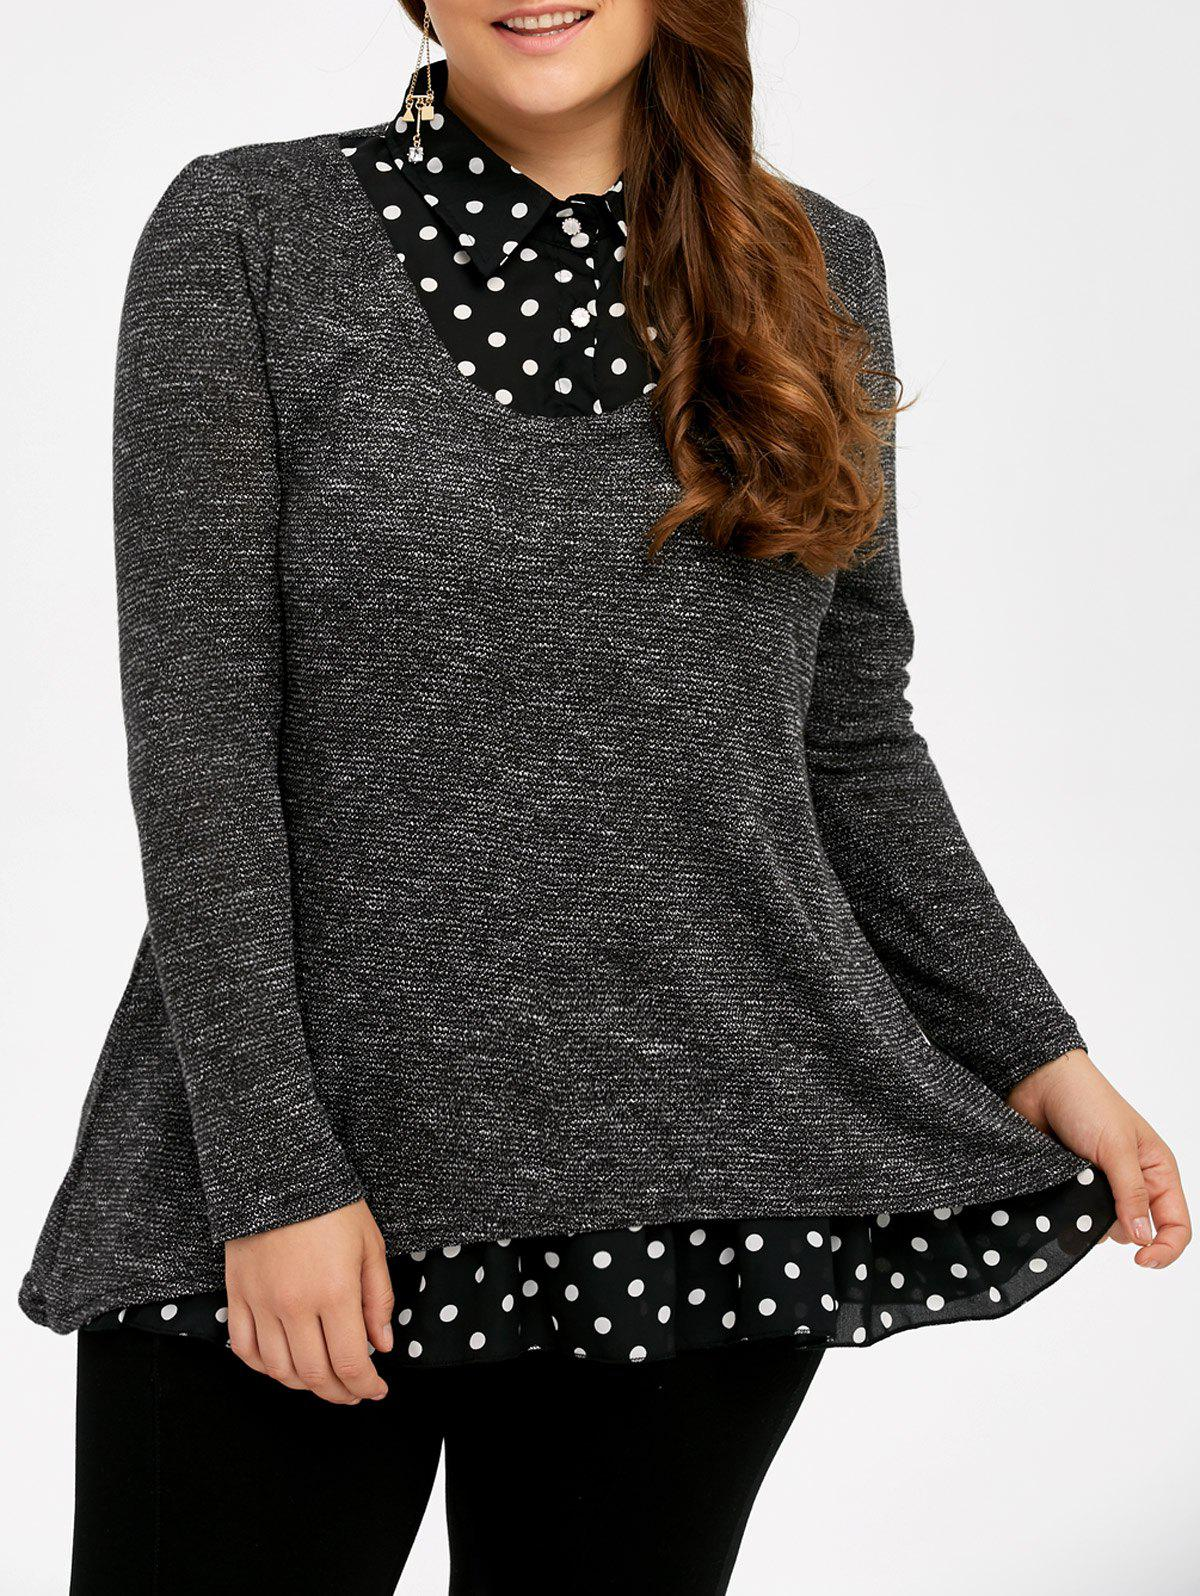 Plus Size Polka Dot Insert SweaterWOMEN<br><br>Size: 5XL; Color: GRAY; Type: Pullovers; Material: Polyester; Sleeve Length: Full; Collar: Shirt Collar; Style: Fashion; Season: Fall,Spring,Winter; Pattern Type: Polka Dot; Weight: 0.420kg; Package Contents: 1 x Sweater;